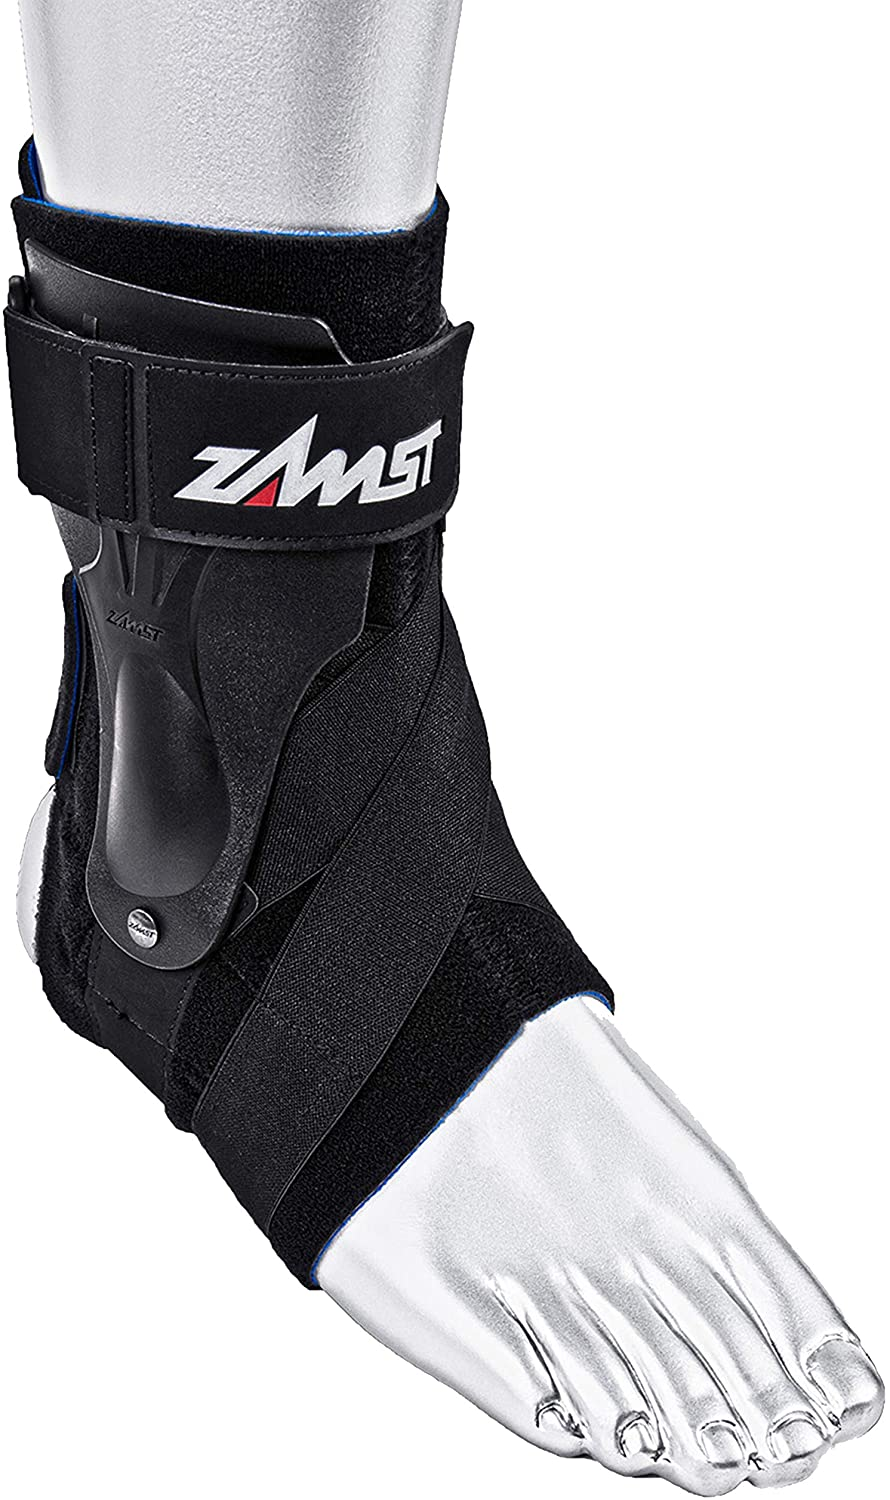 5 best ankle braces for everyday use